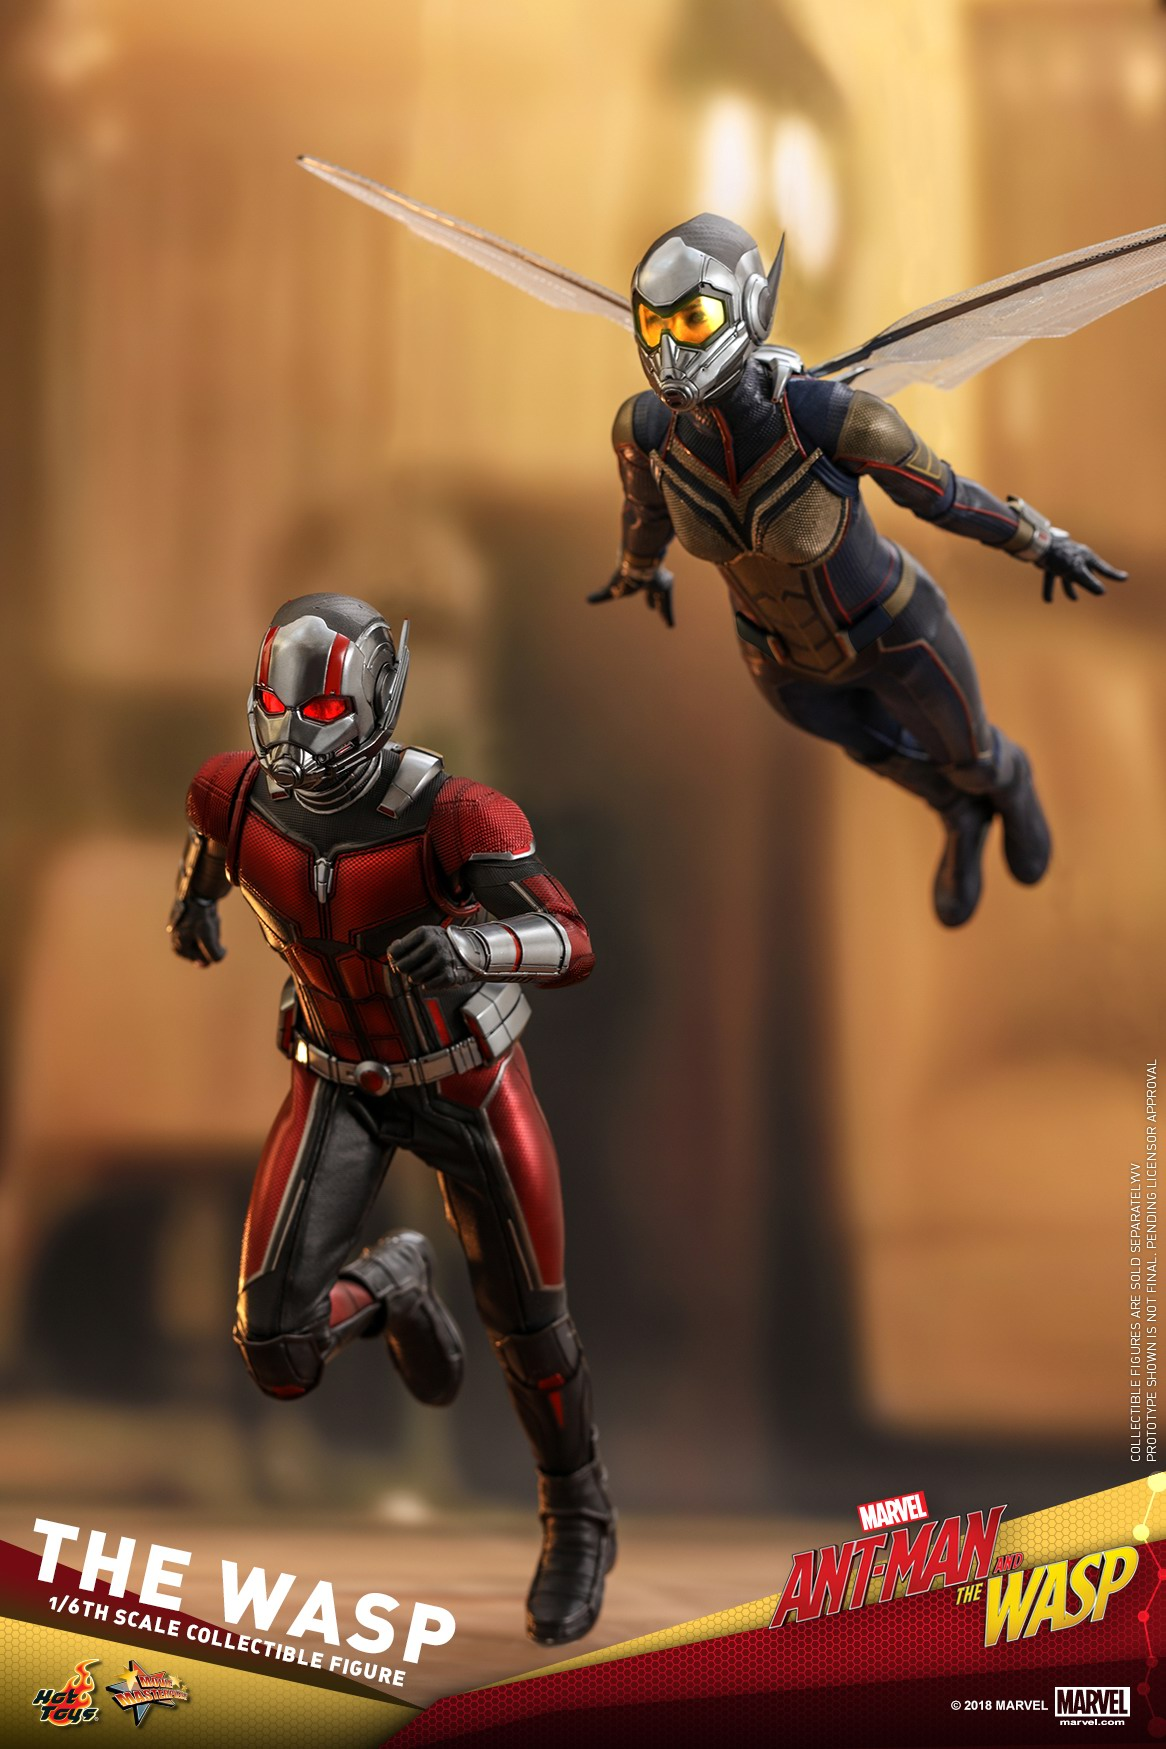 Hot-Toys-Ant-Man-and-The-Wasp-The-Wasp-Collectible-Figure_PR28.jpg